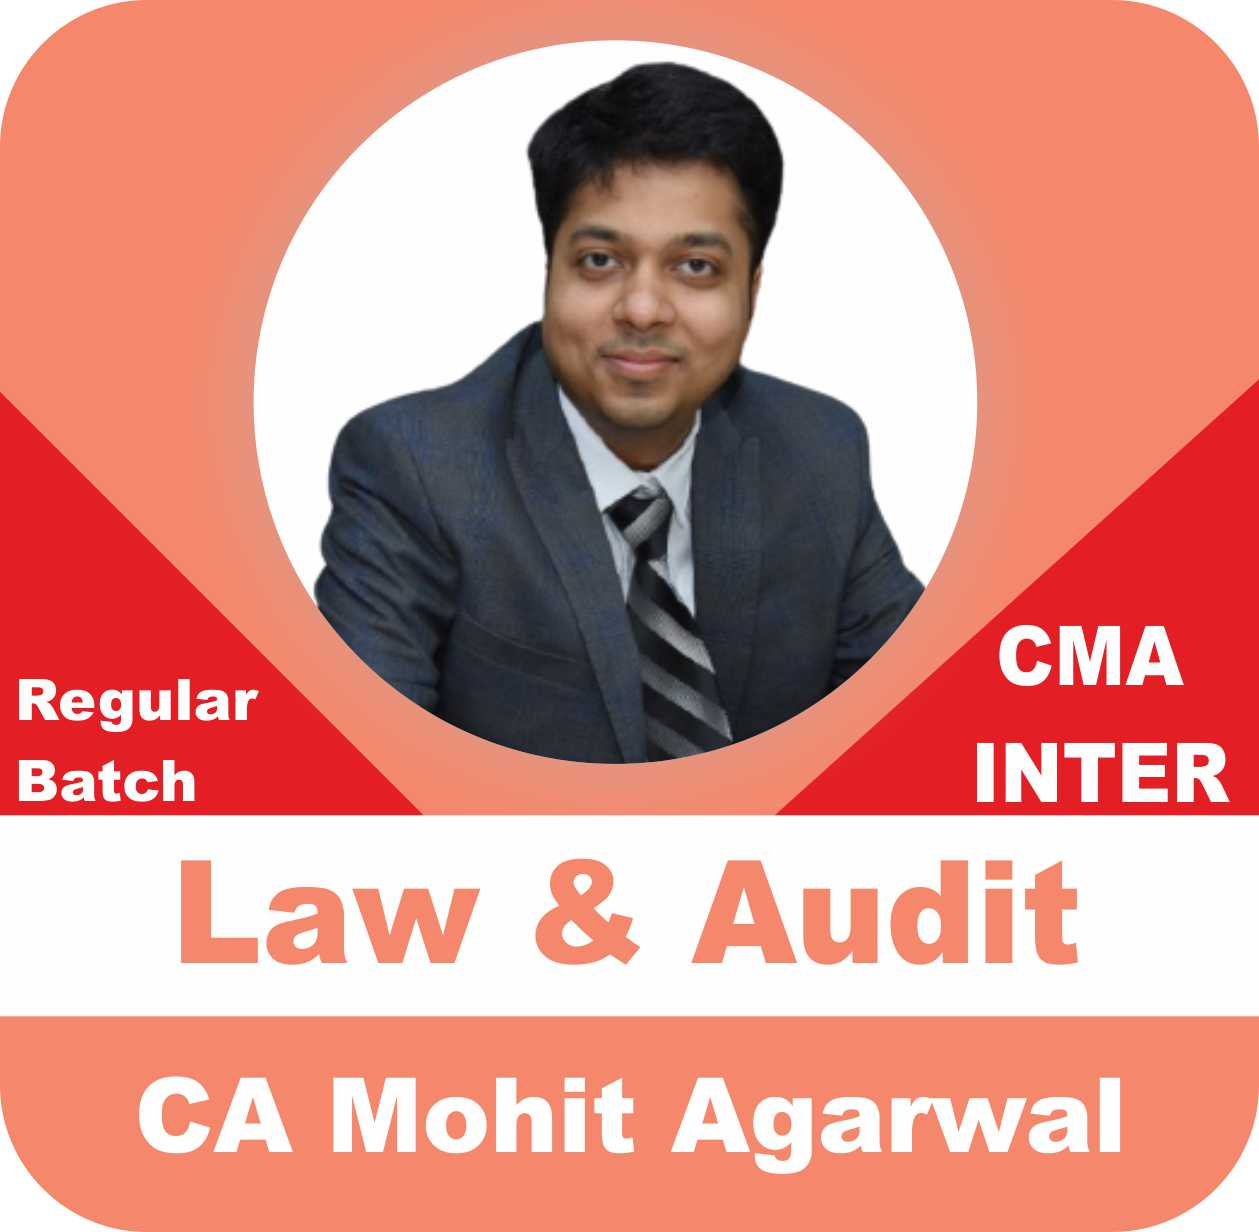 Laws & Ethics + Audit Regular Batch Combo